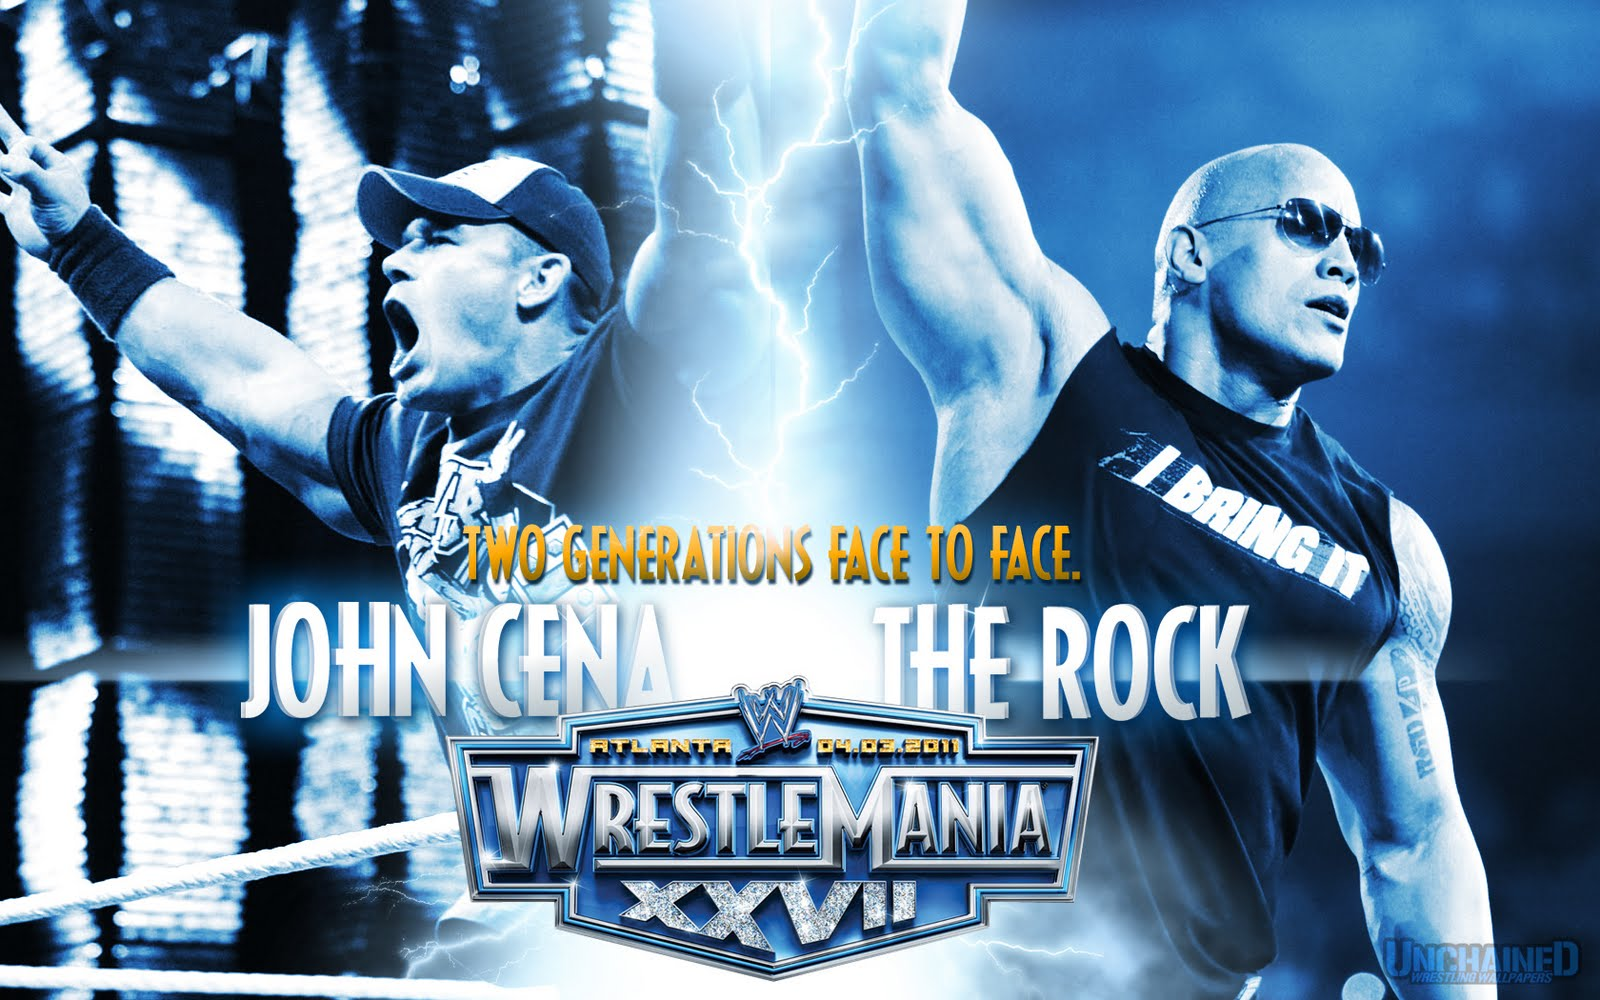 rock vs john cena wallpapers | wallpapers